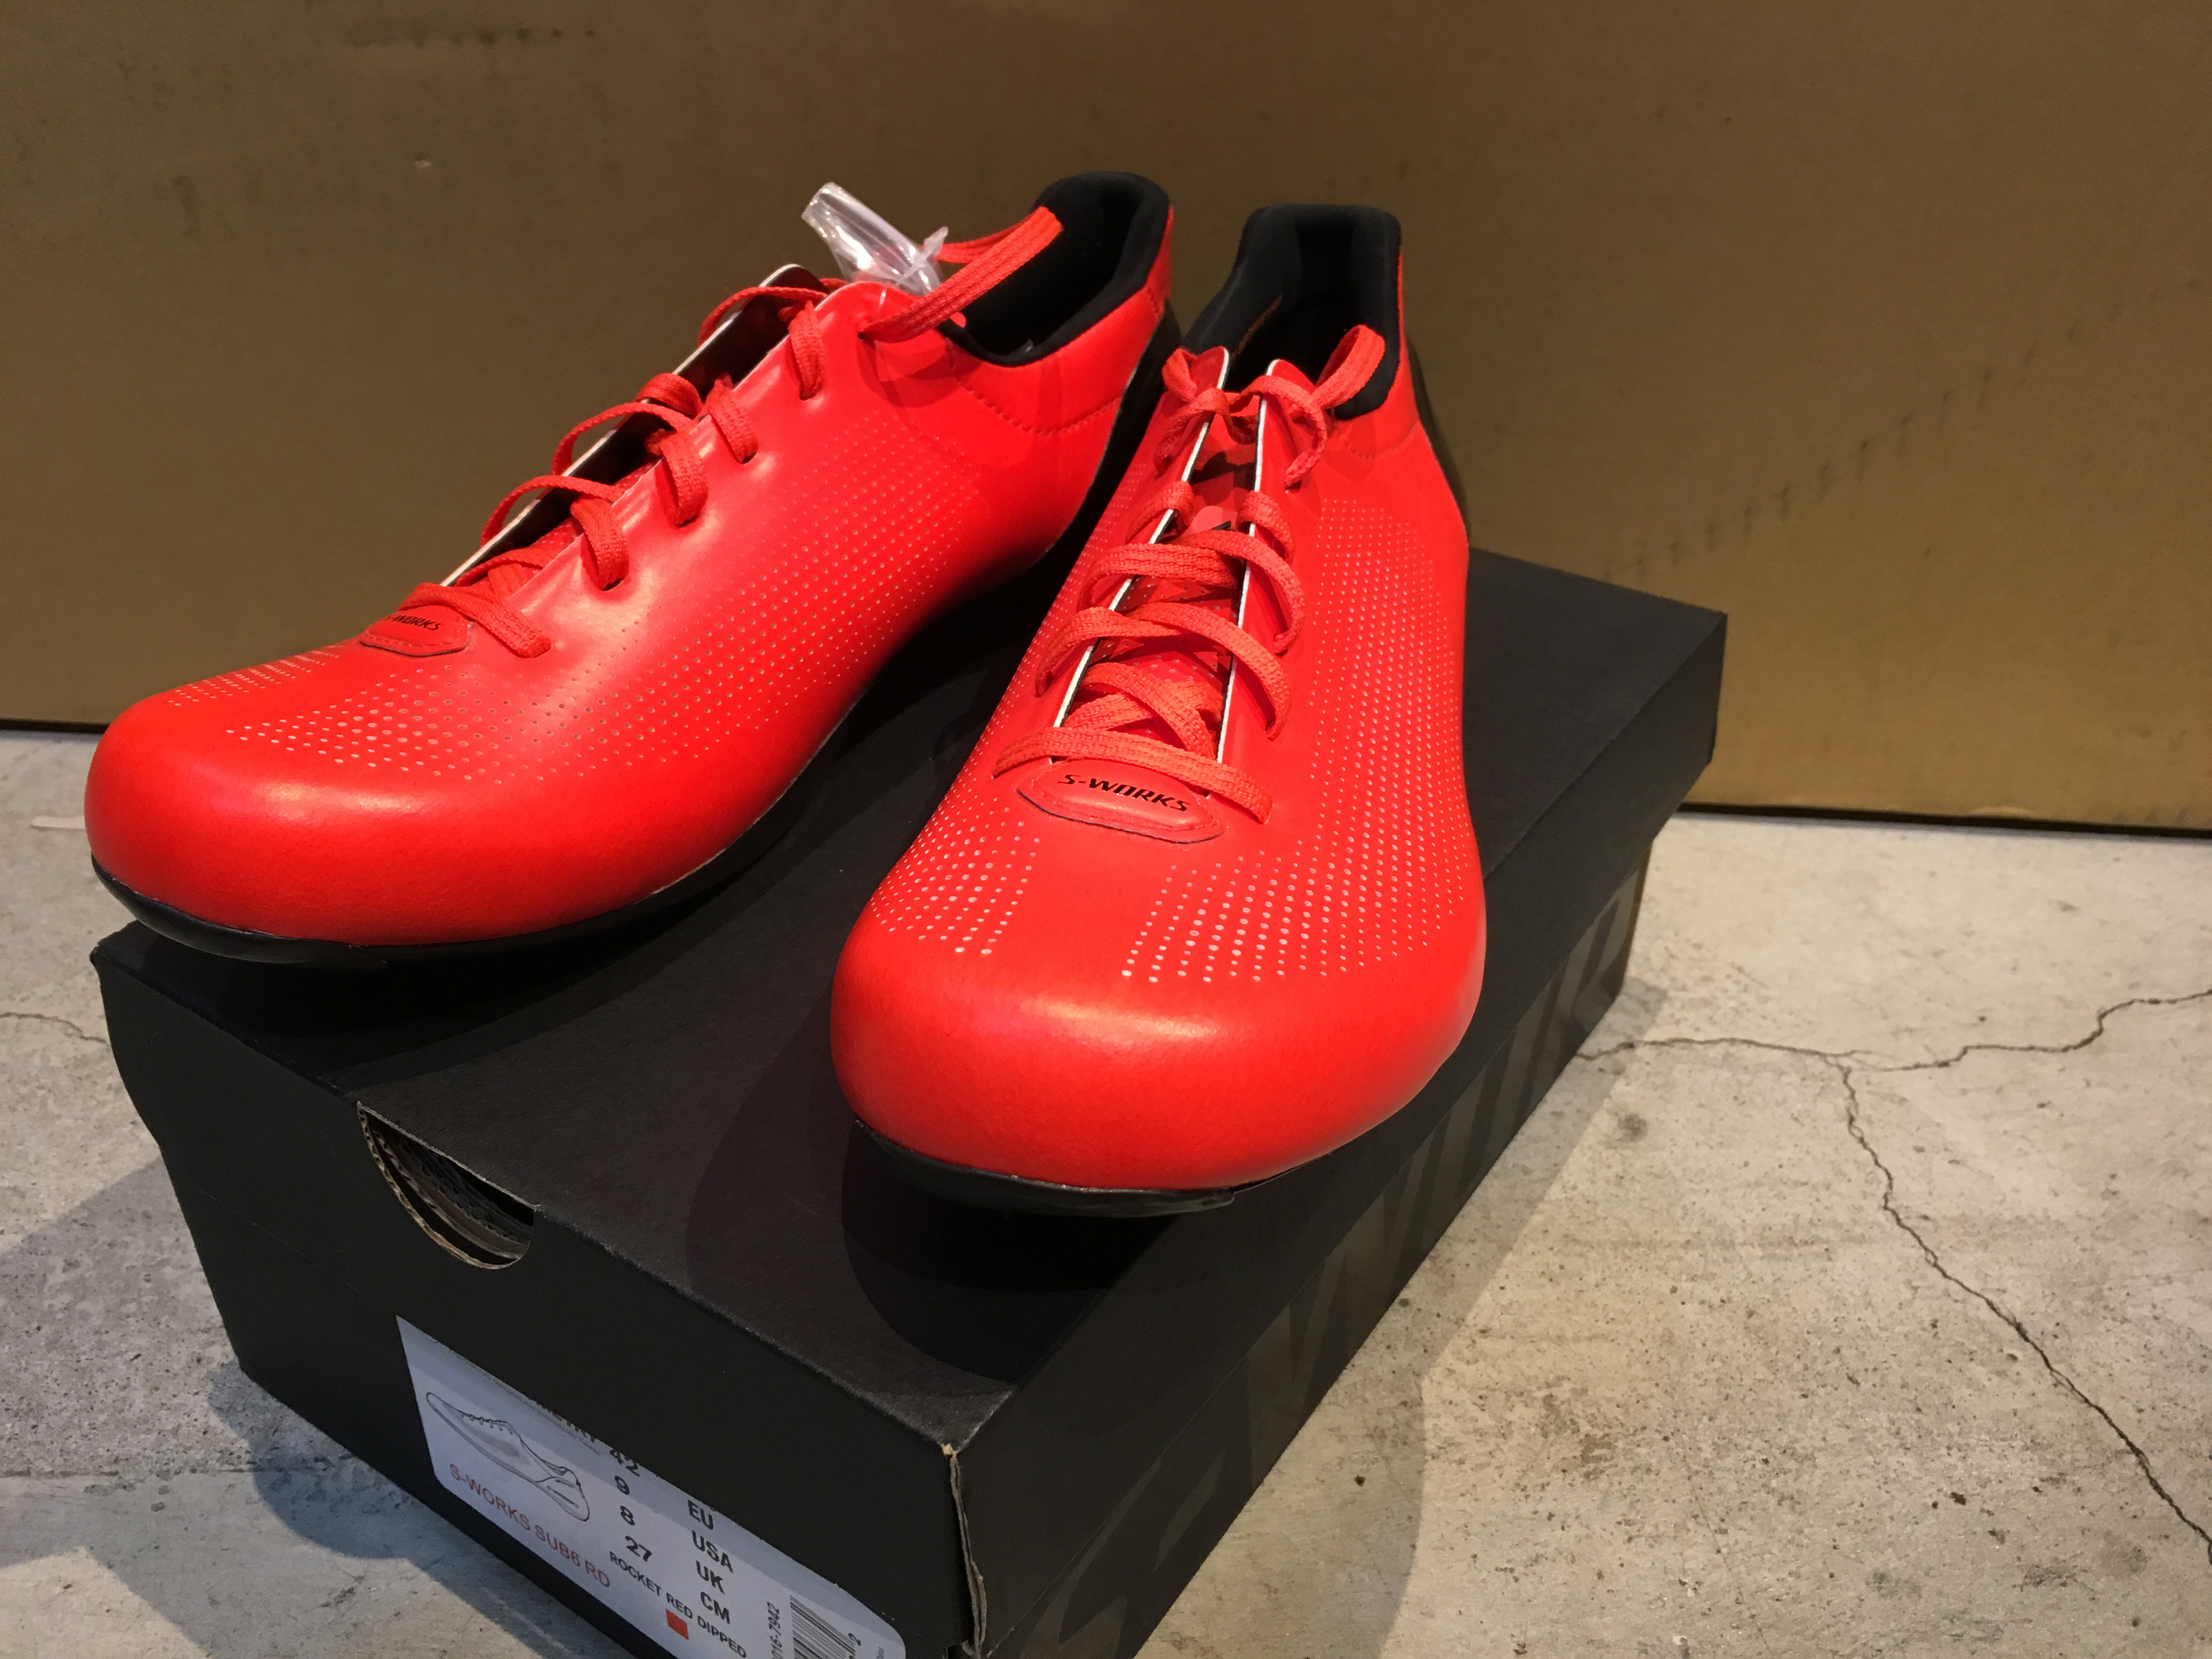 S-WORKS Sub6 RosdShoes(2016RED)